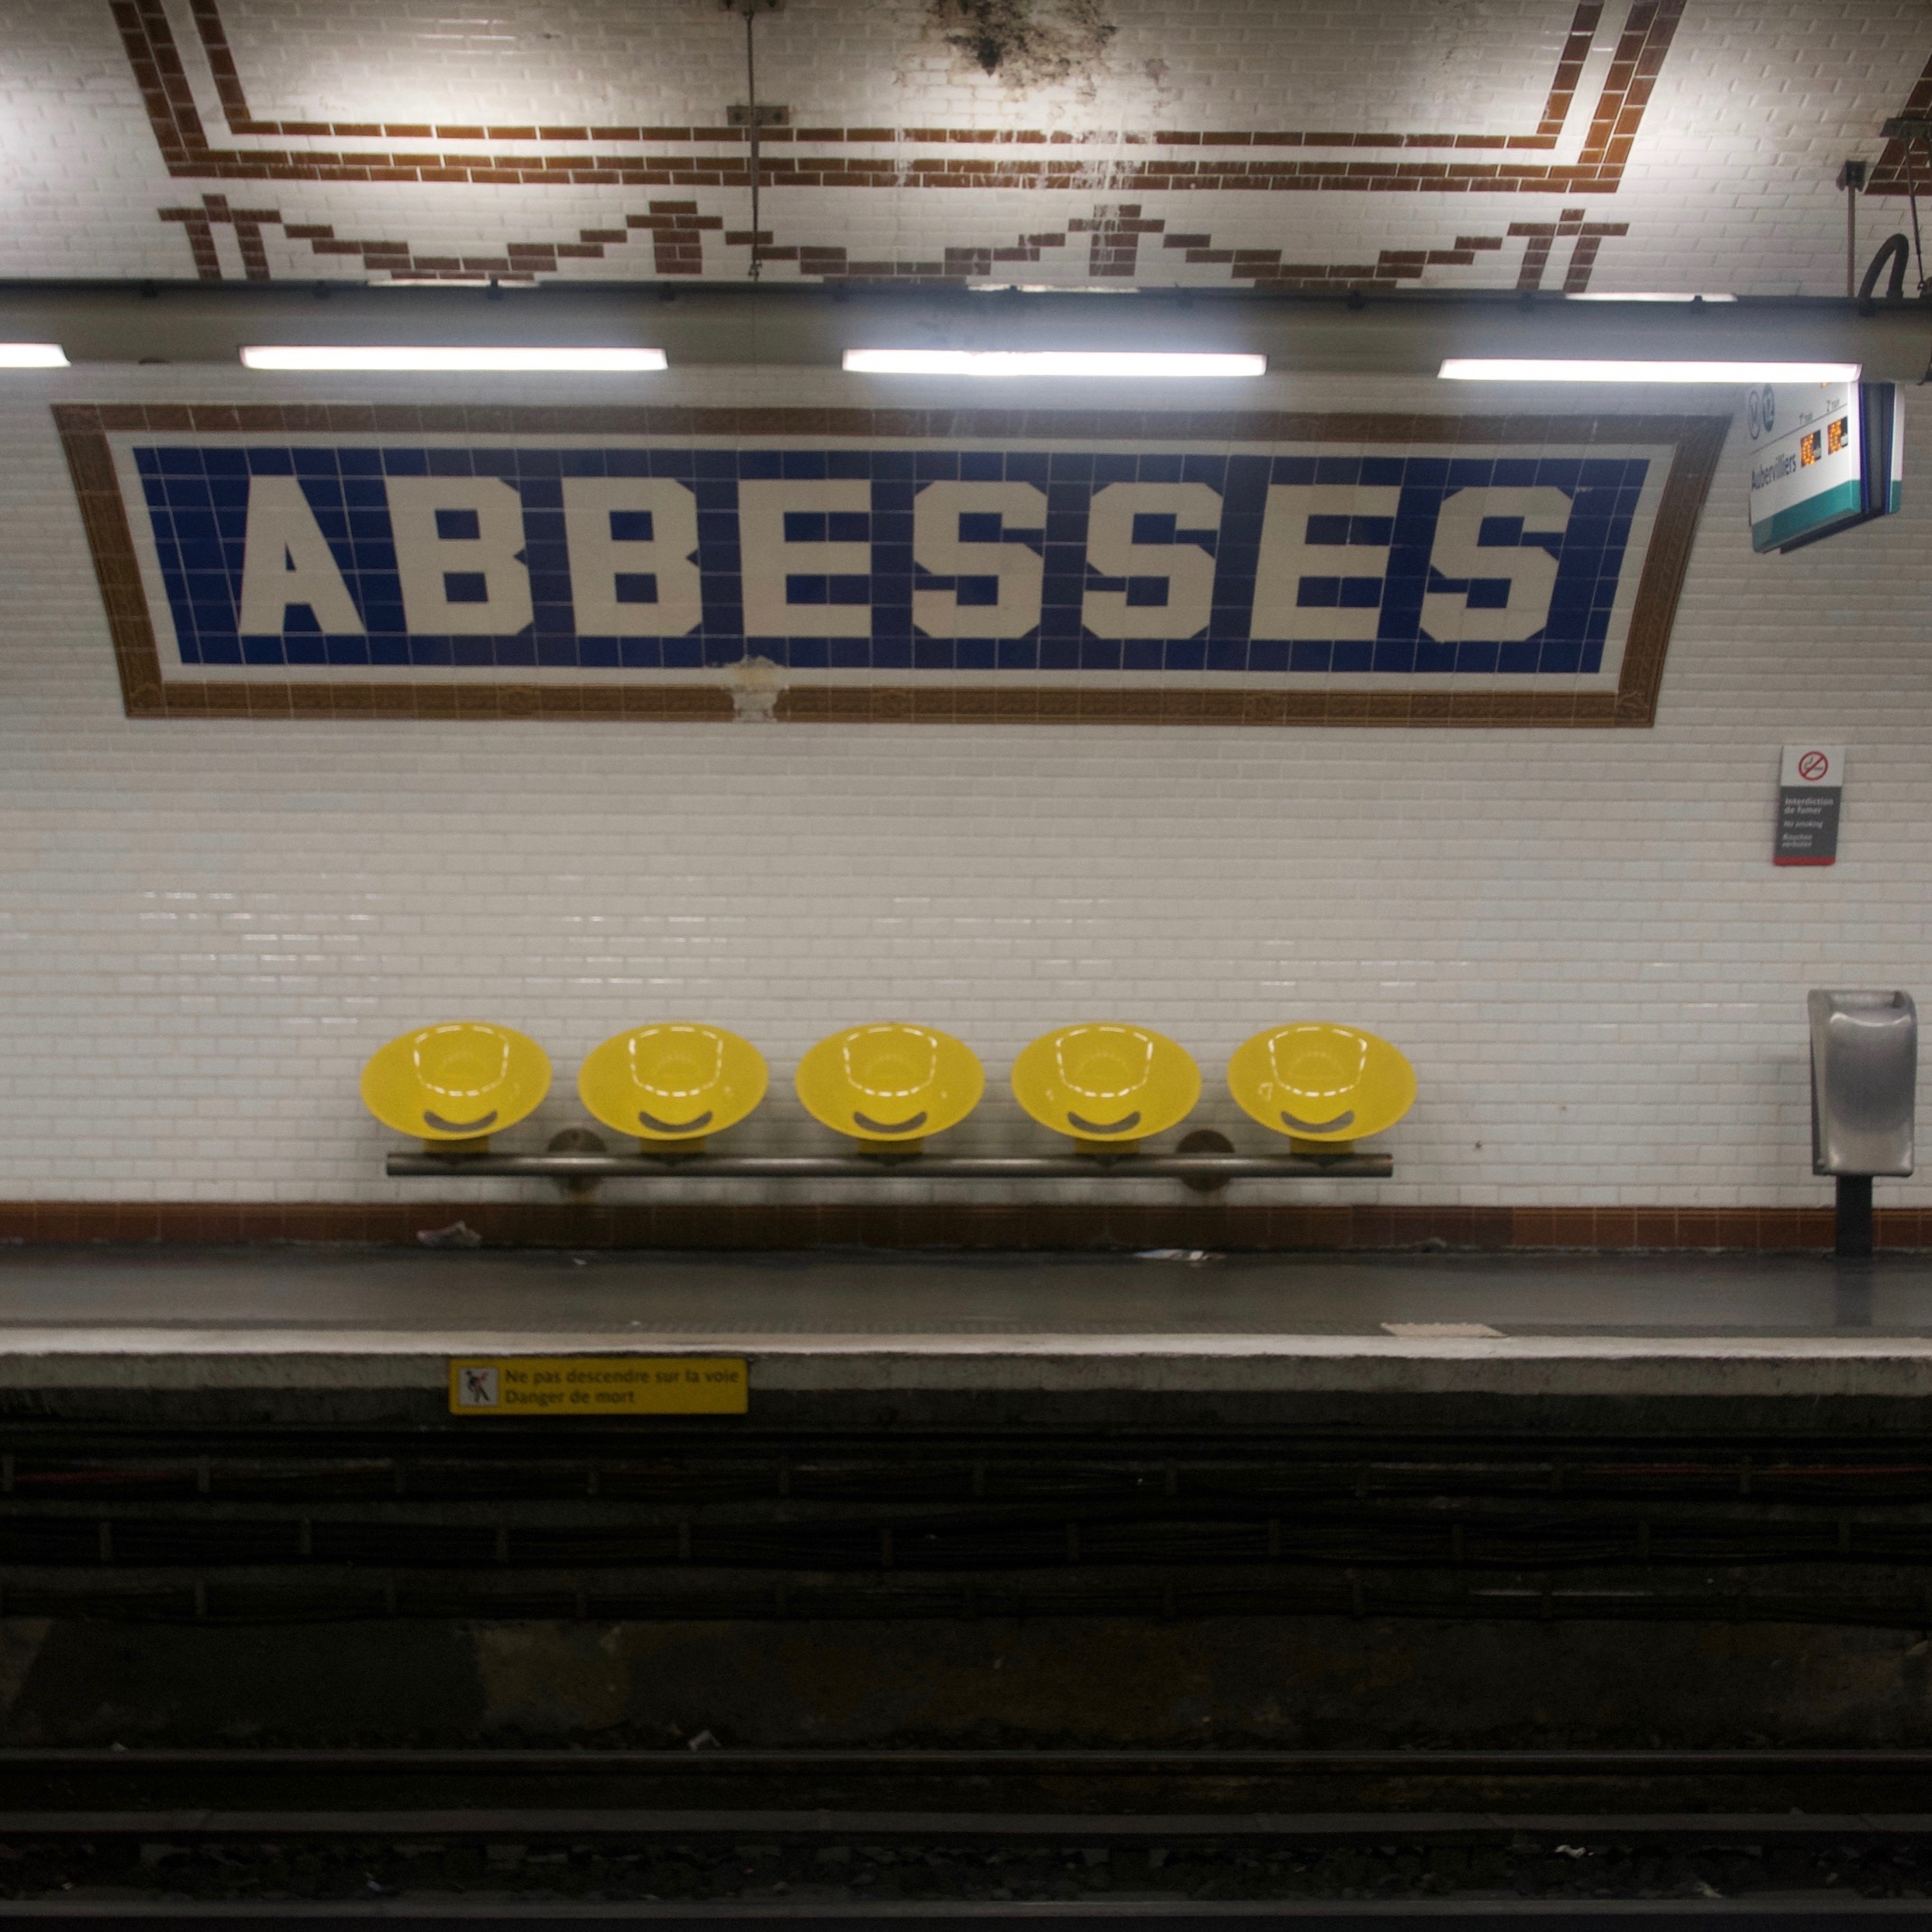 The Paris Metro stations have such cool designs, I LOVE the yellow smiley face chairs.